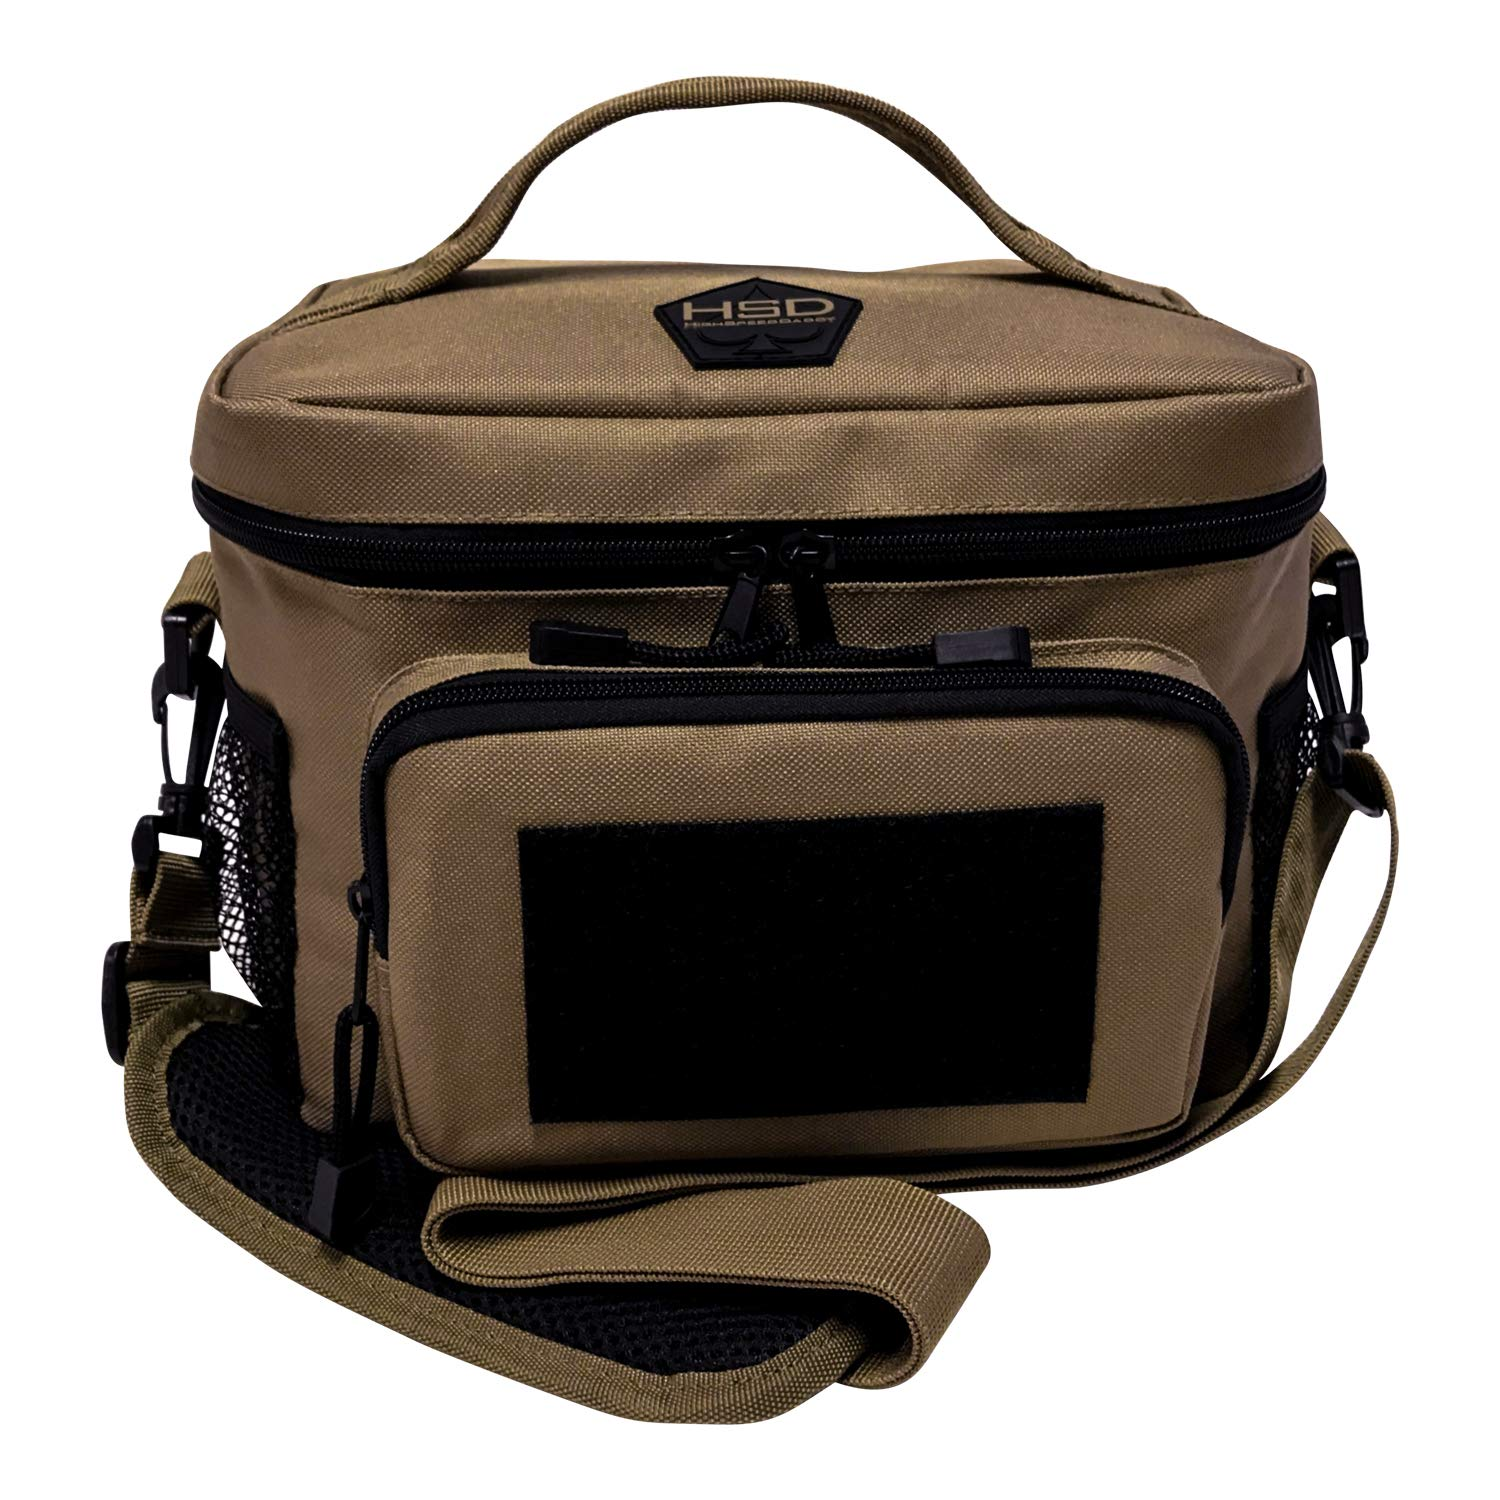 22b565778f6f HSD Tactical Lunch Bag - Insulated Cooler, Lunch Box with MOLLE/PALS ...